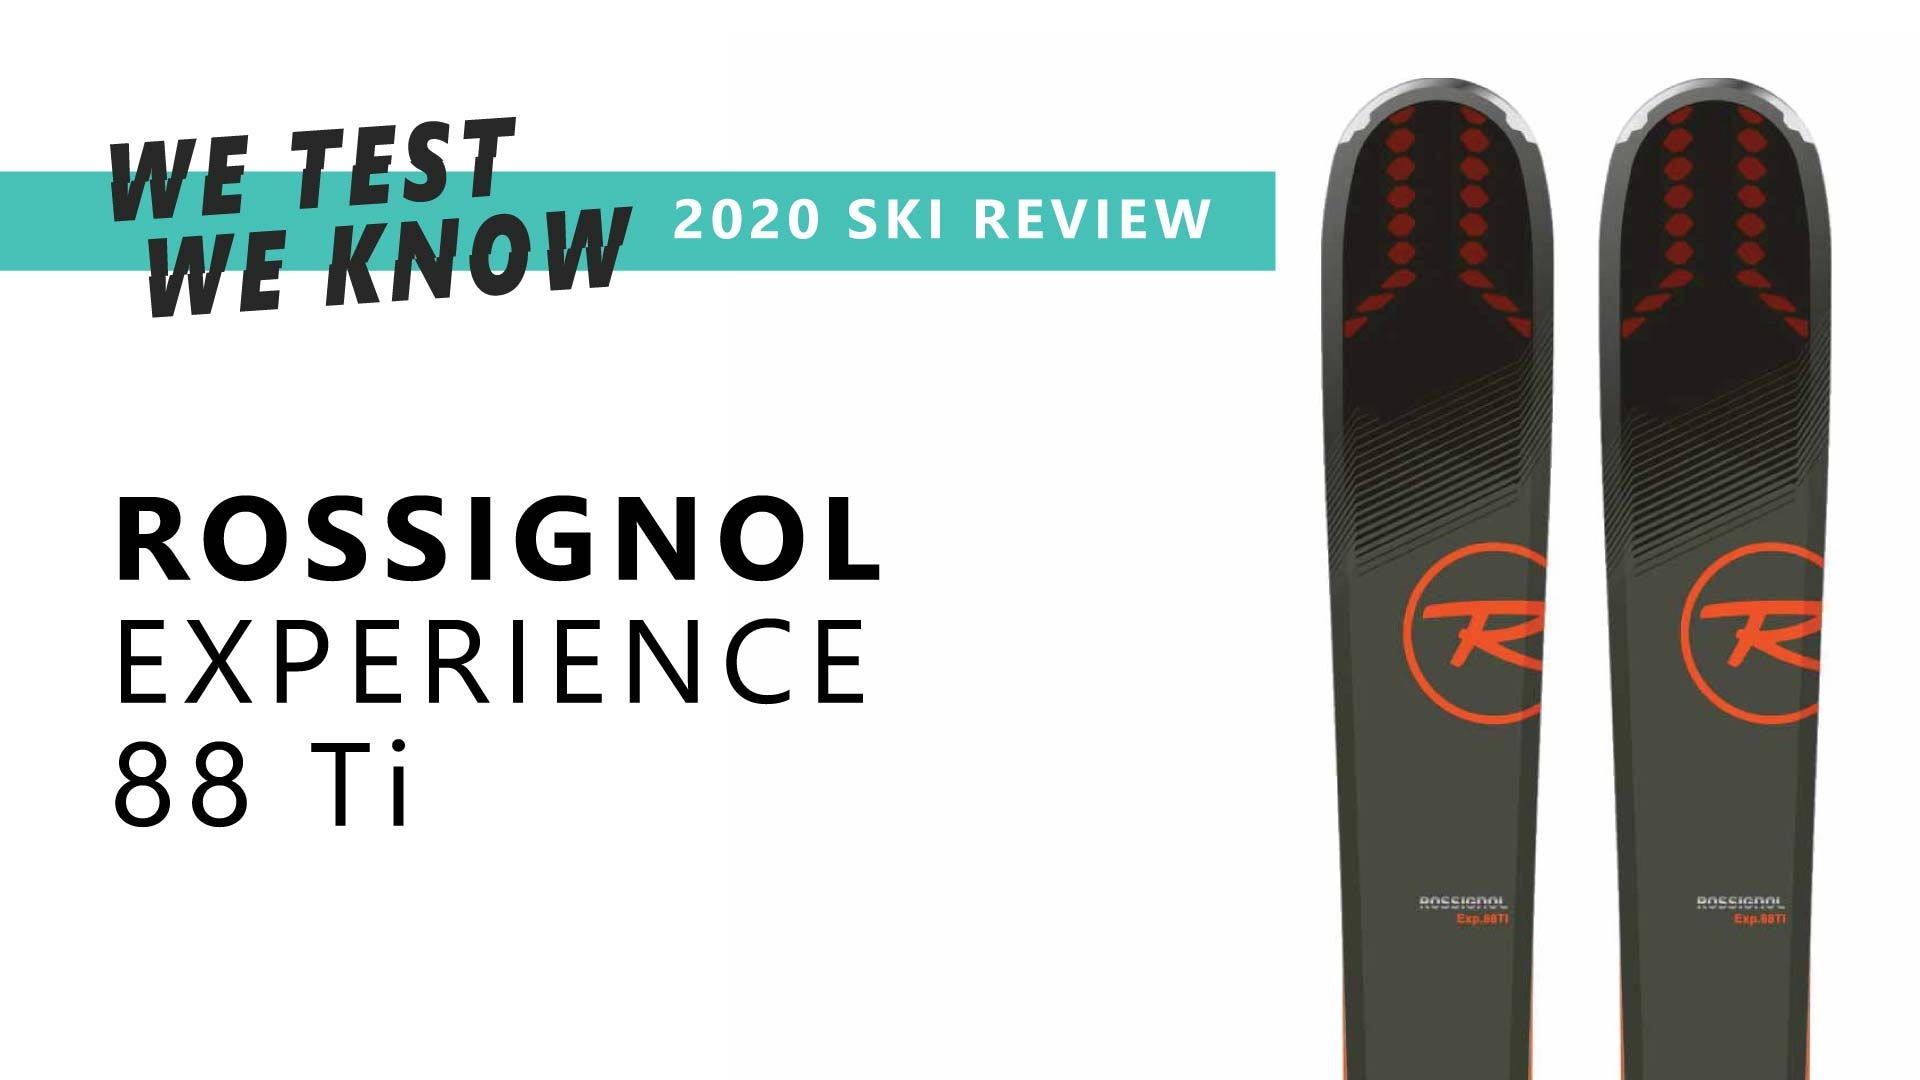 Rossignol Experience 88Ti - 2020 Ski Review